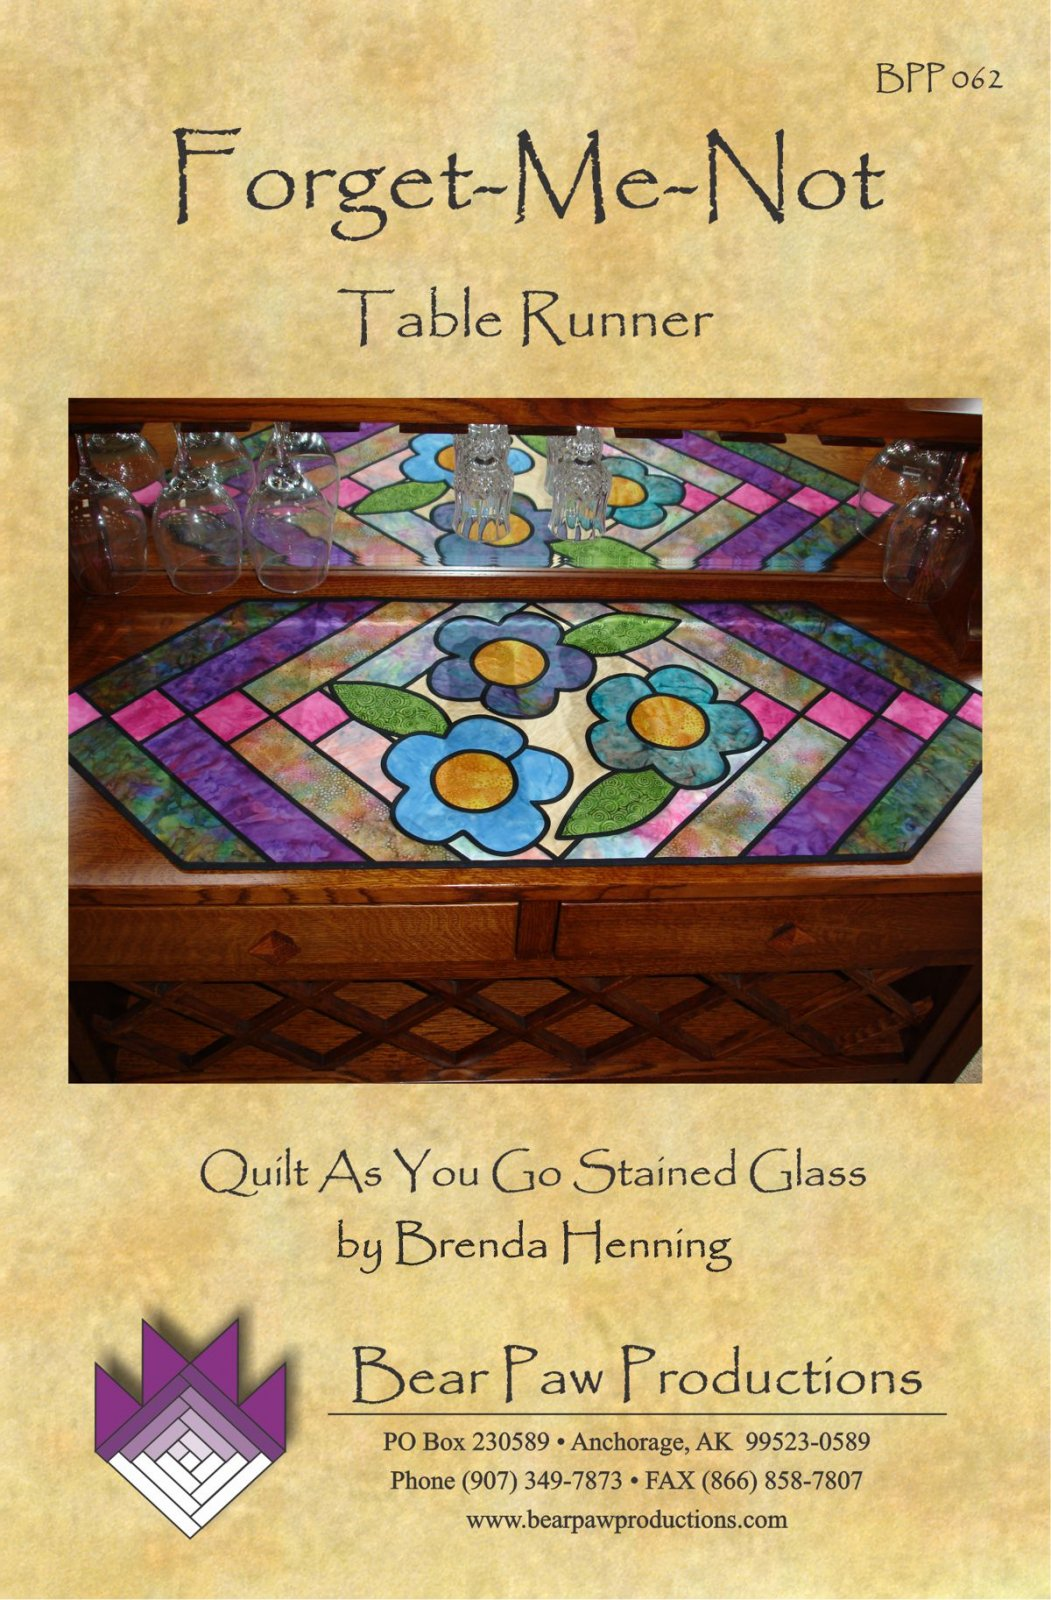 Forget-Me-Not Table Runner in Stained Glass